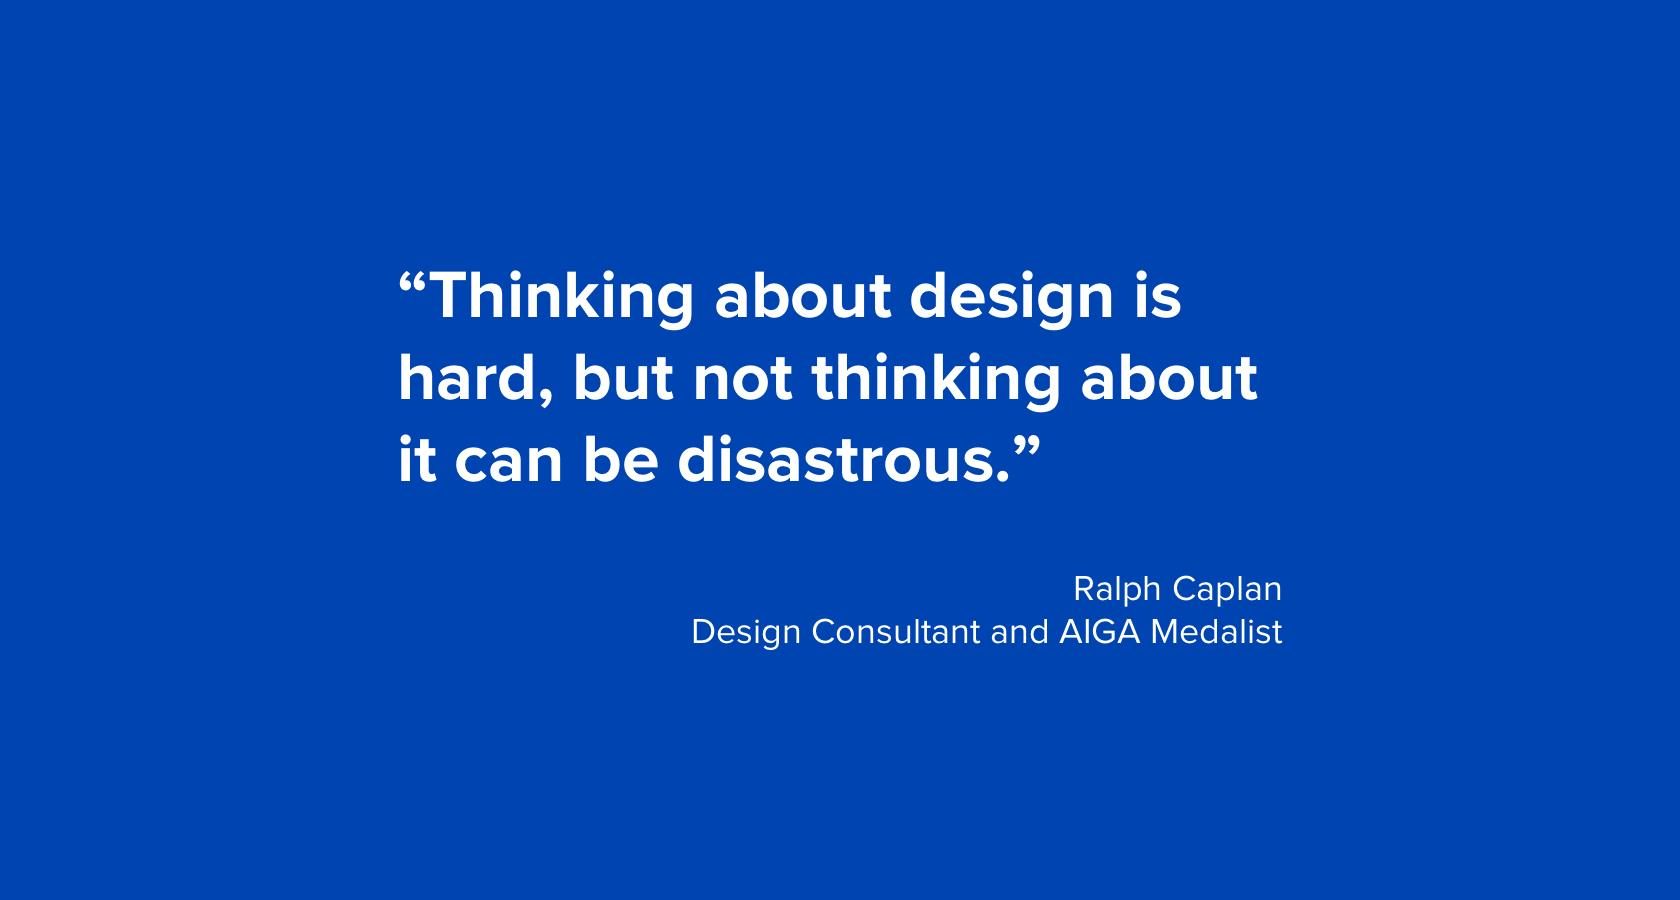 Quote by Ralph Caplan: Thinking about design